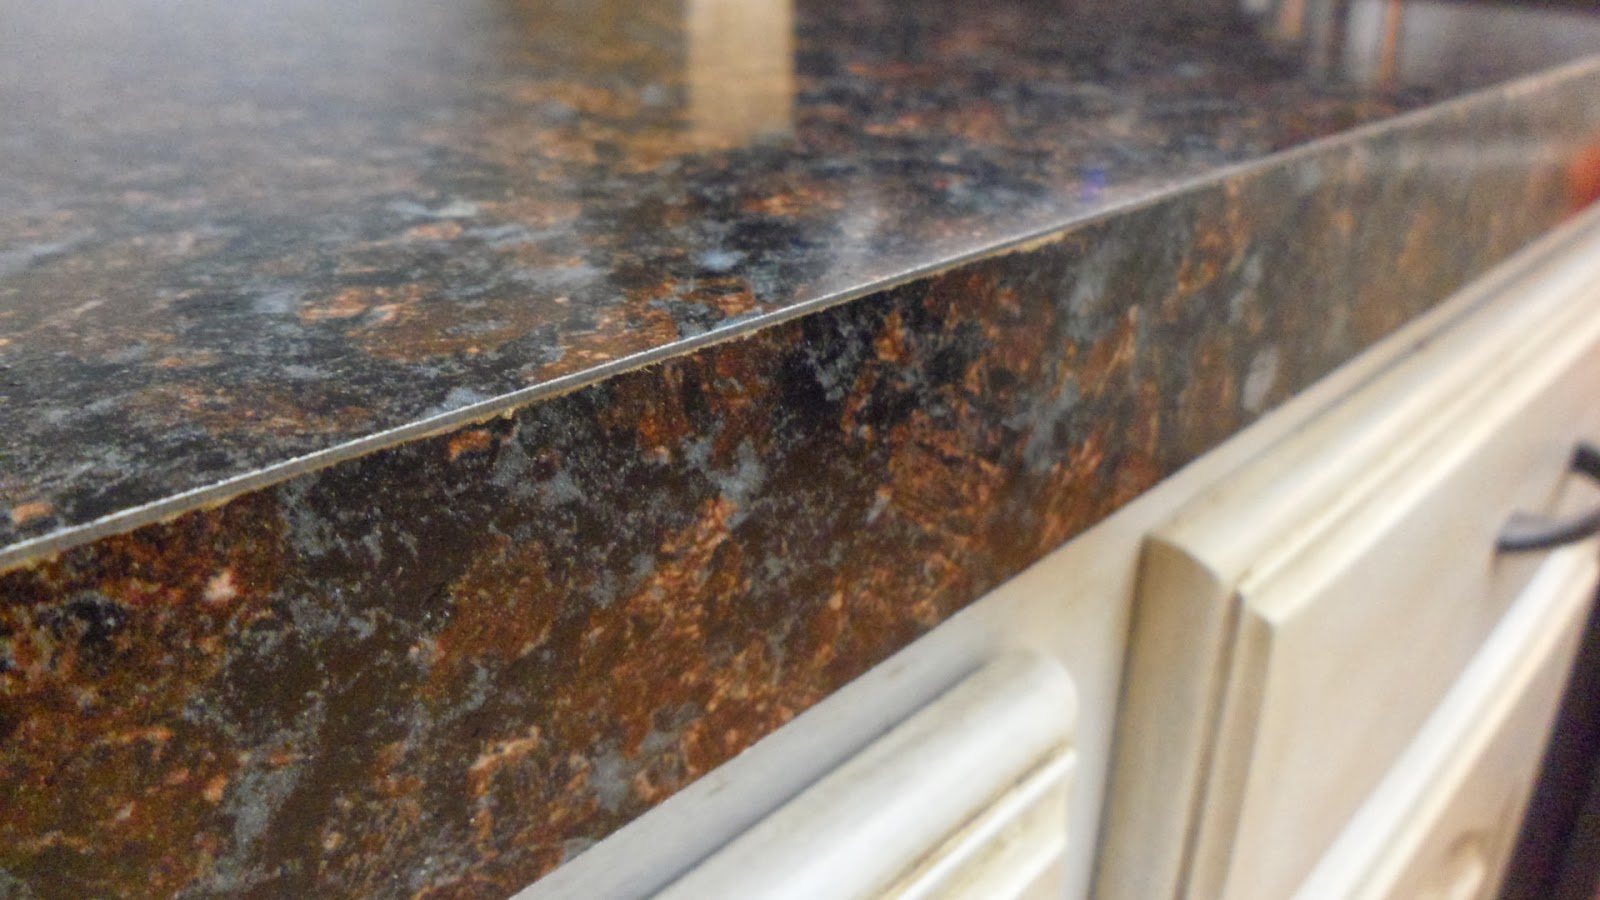 Laminate+Seam+Filler+for+Countertops The old laminate also had a large ...